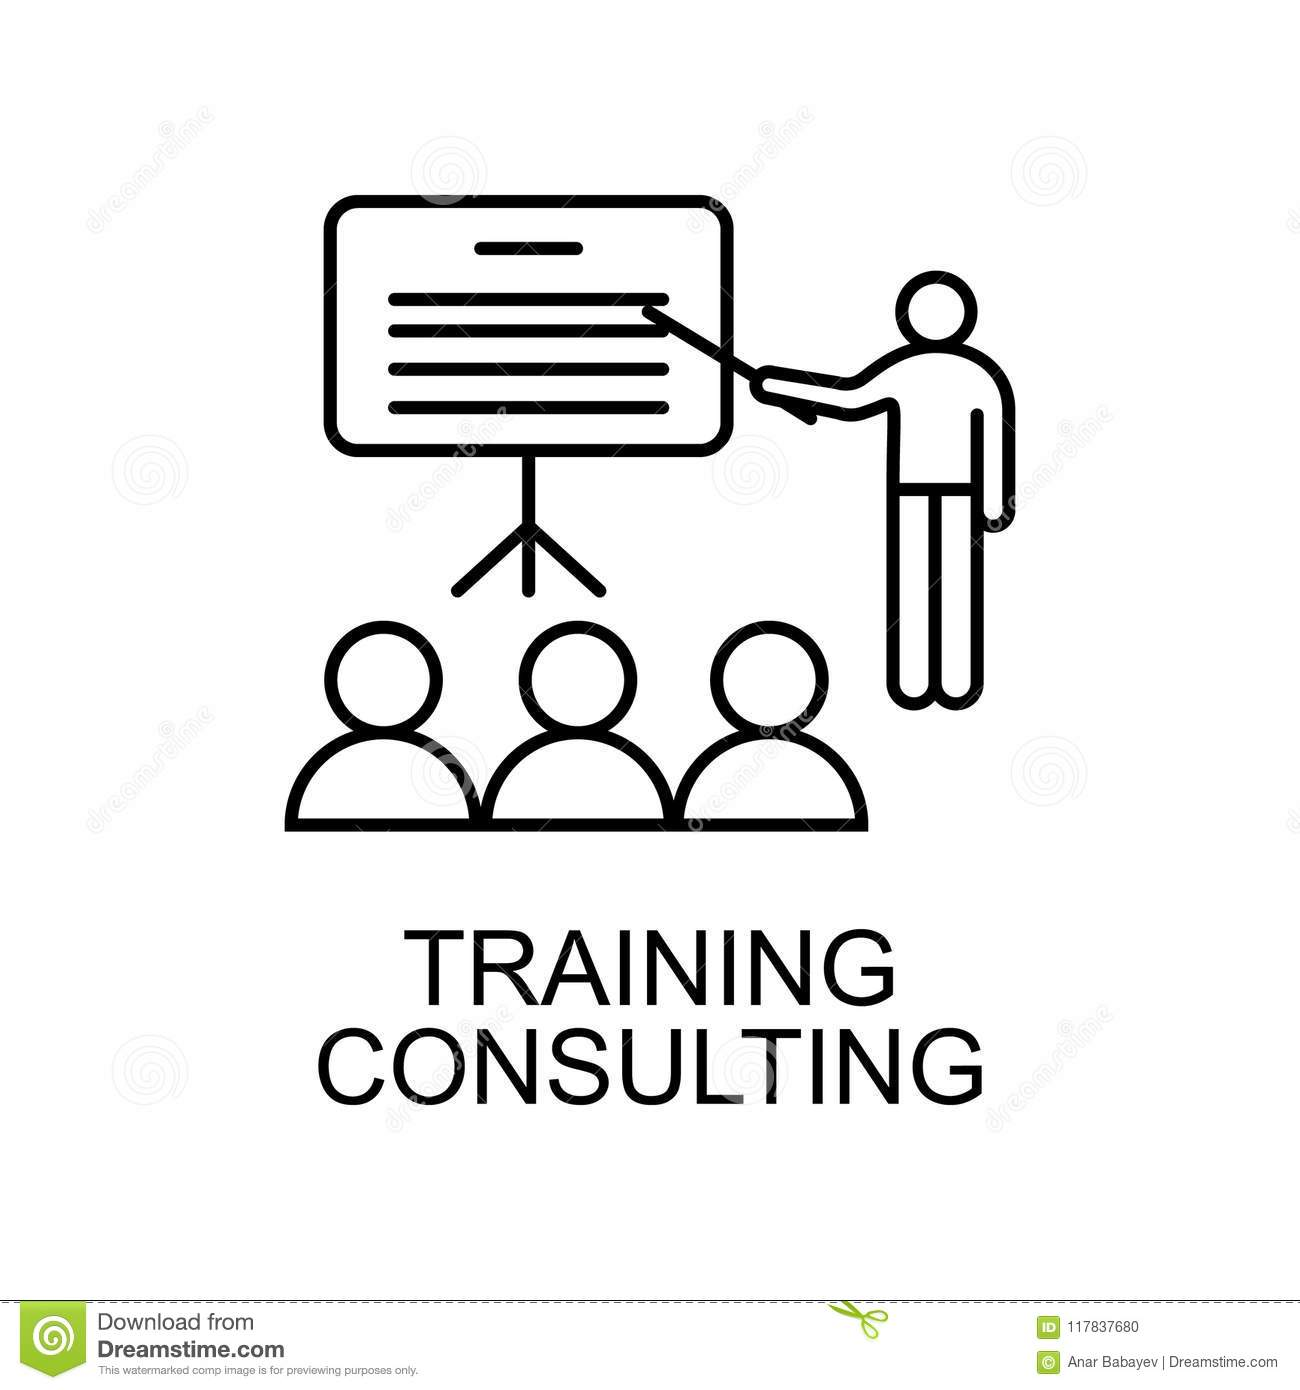 c9f769d6c989 Training consulting line icon. Element of human resources icon for mobile  concept and web apps